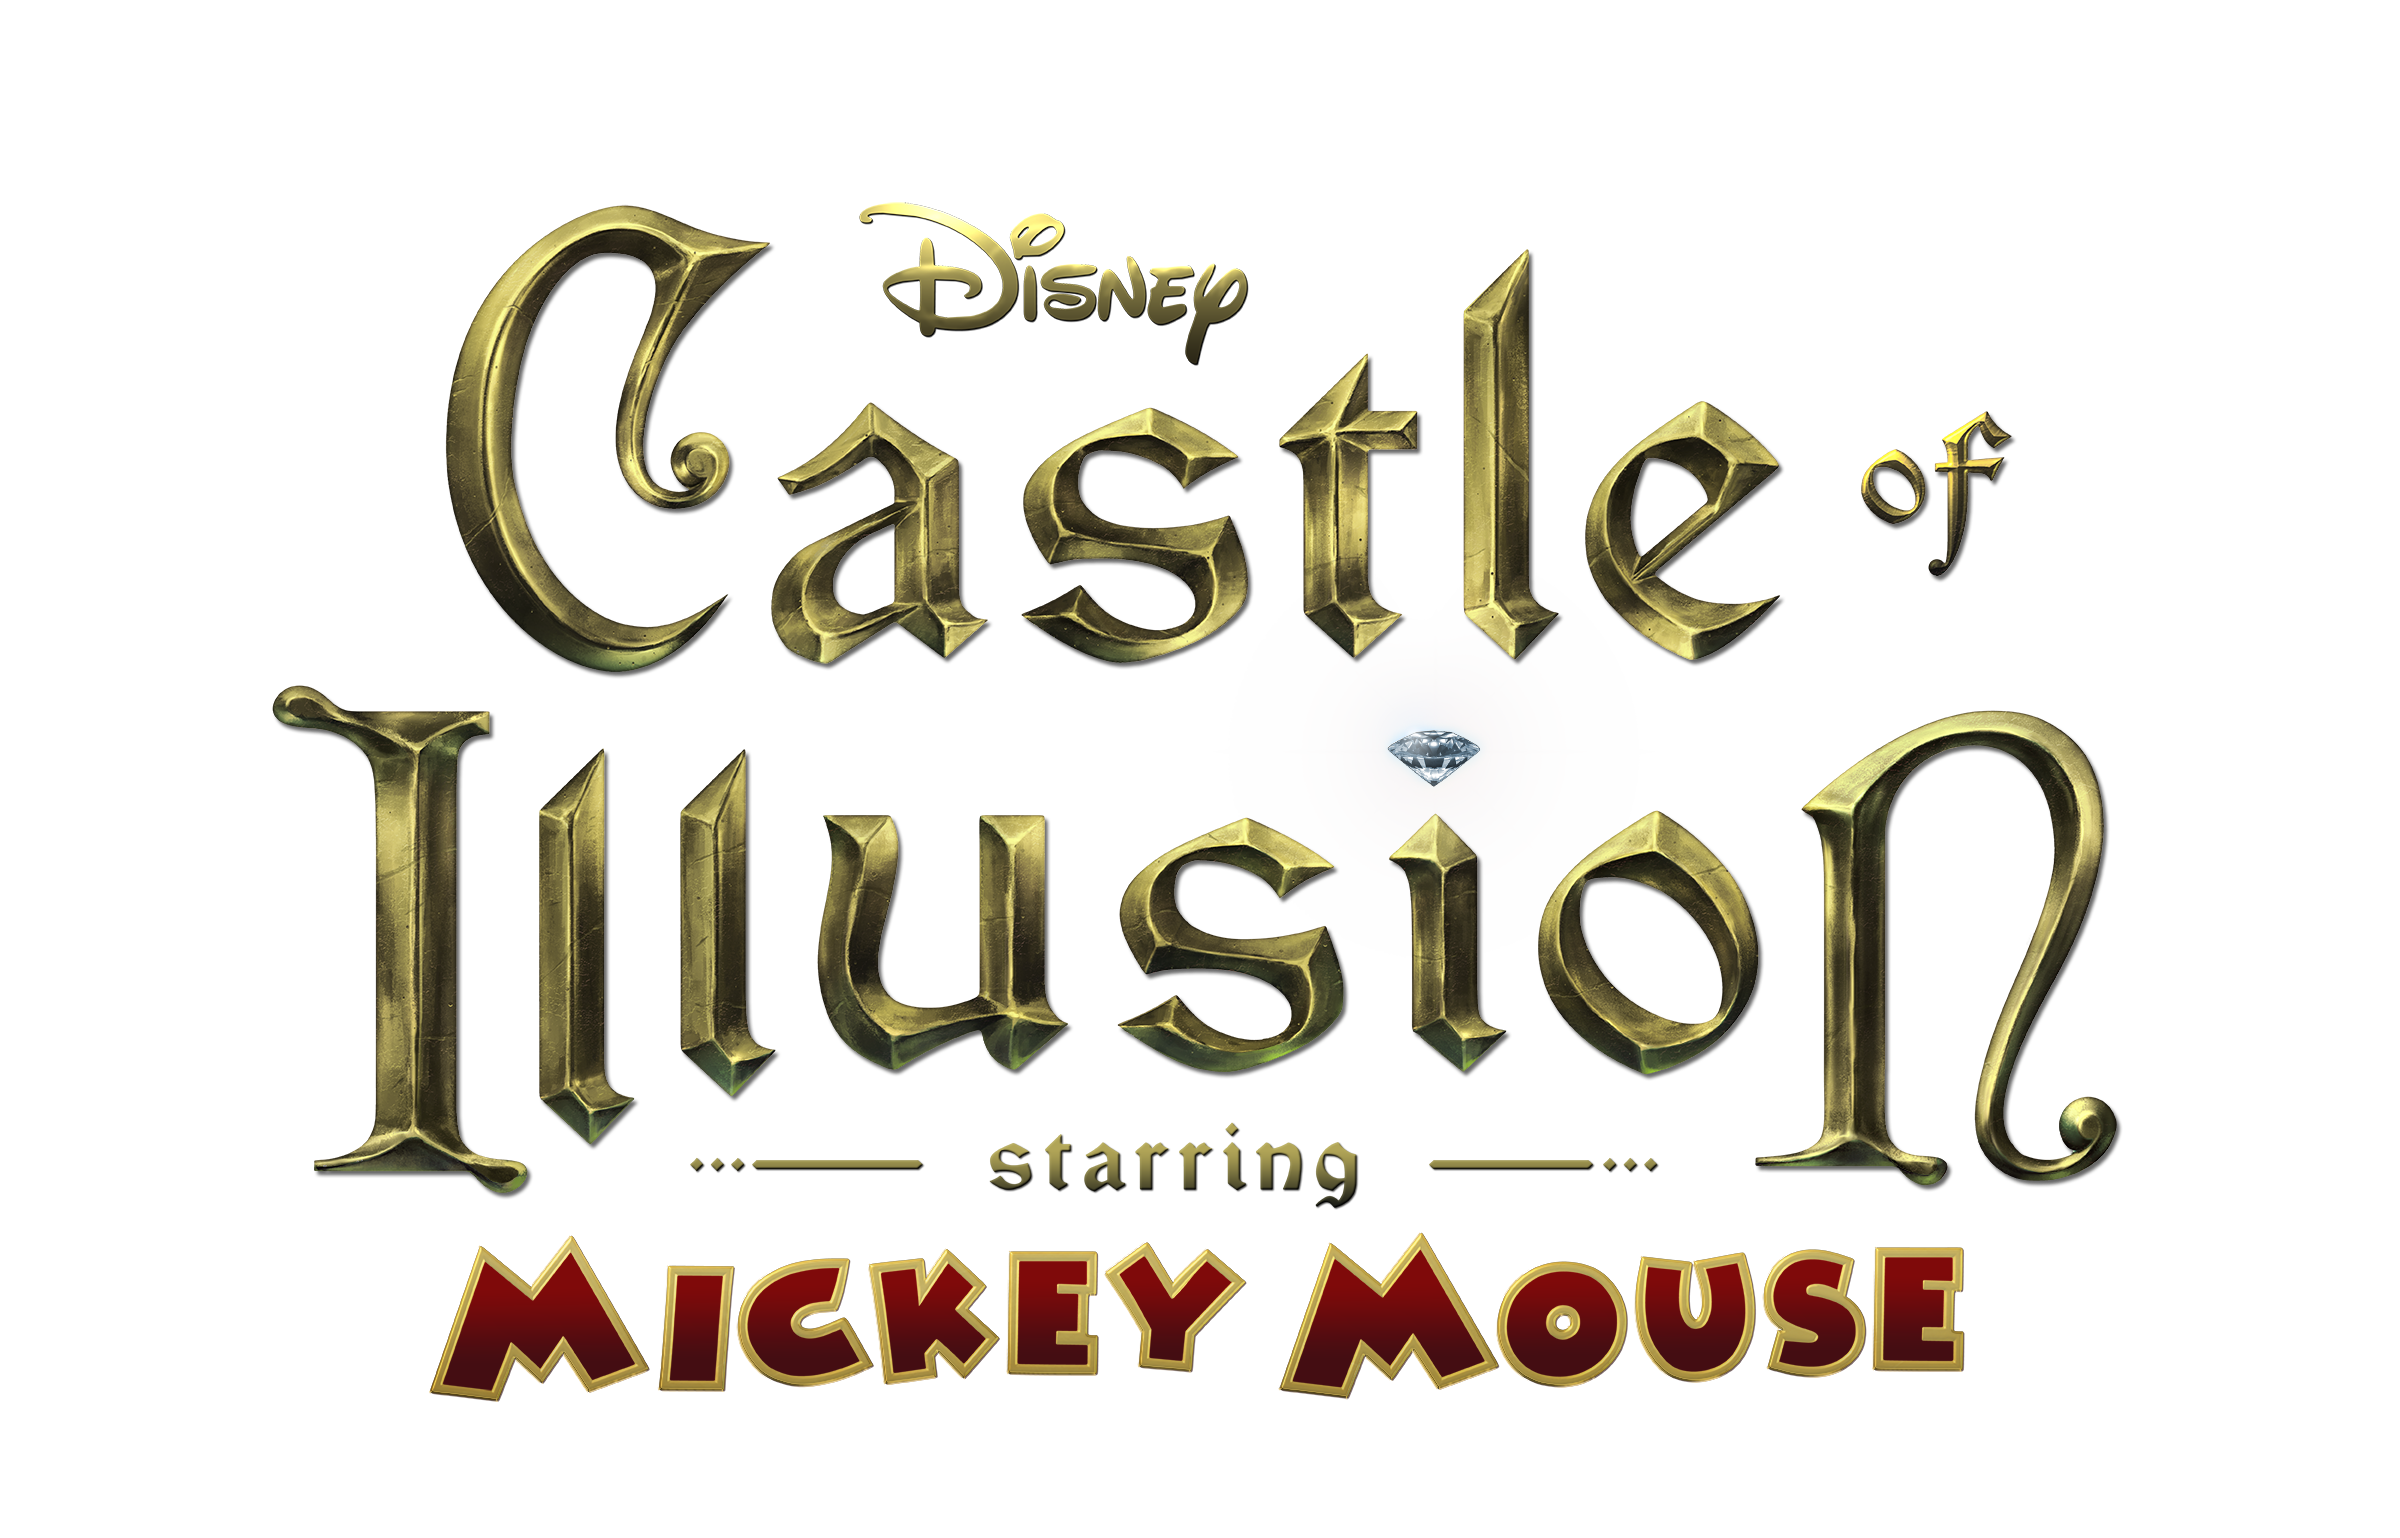 Castle of Illusion Staring Mickey Mouse (2013)